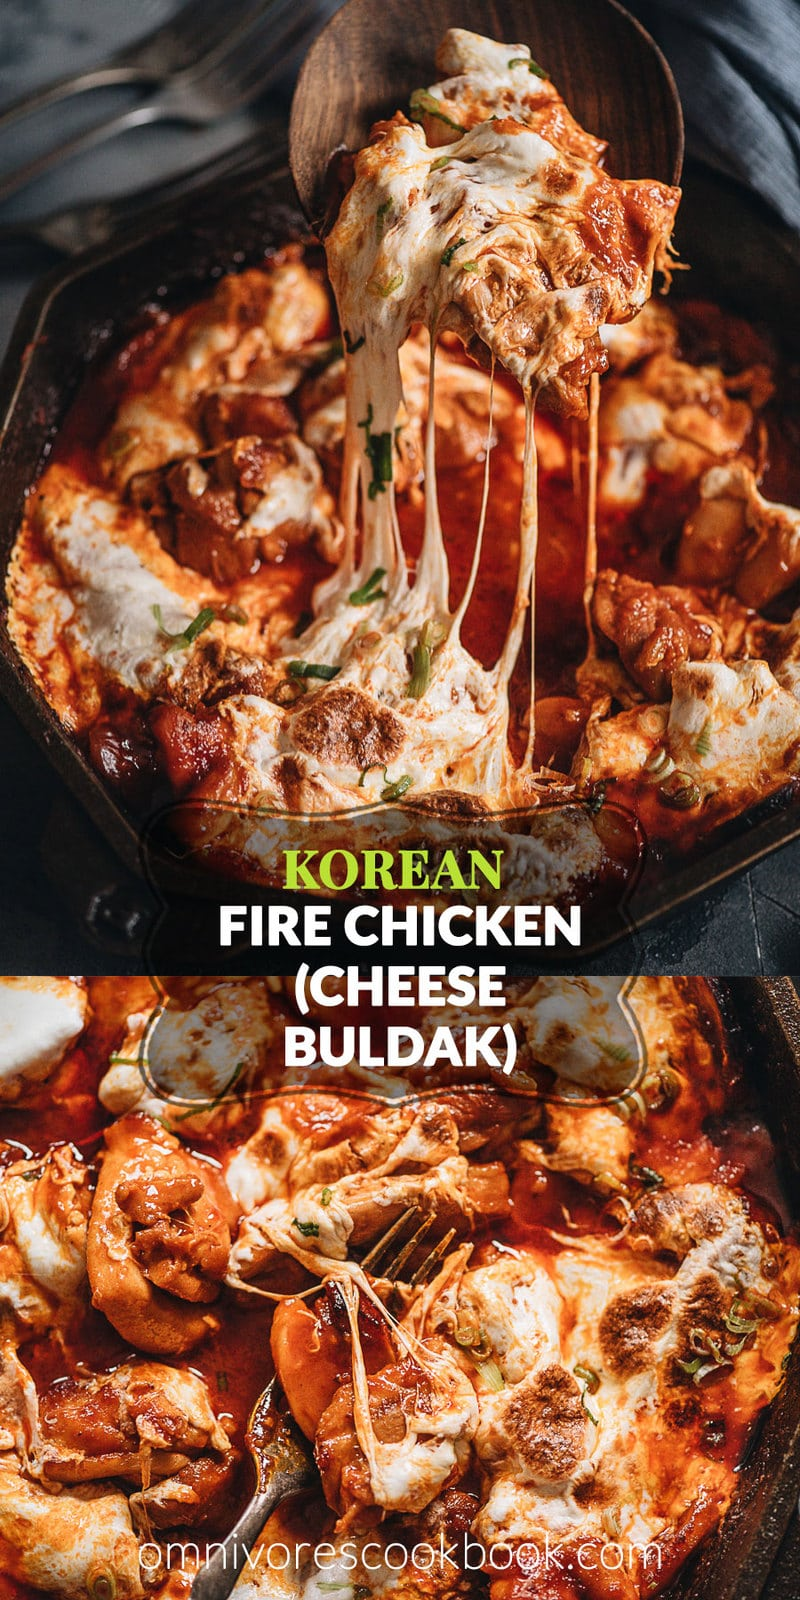 Korean Fire Chicken (Cheese Buldak) - It features chunky, juicy chicken swamped in a chili sauce with chewy rice cakes and melty cheese. It contains all the essence of a pizza and it's addictively good. It's extremely easy to put together and takes no time to make. If you're looking for a quick one-pan dinner recipe, look no further! {Gluten-Free adaptable}